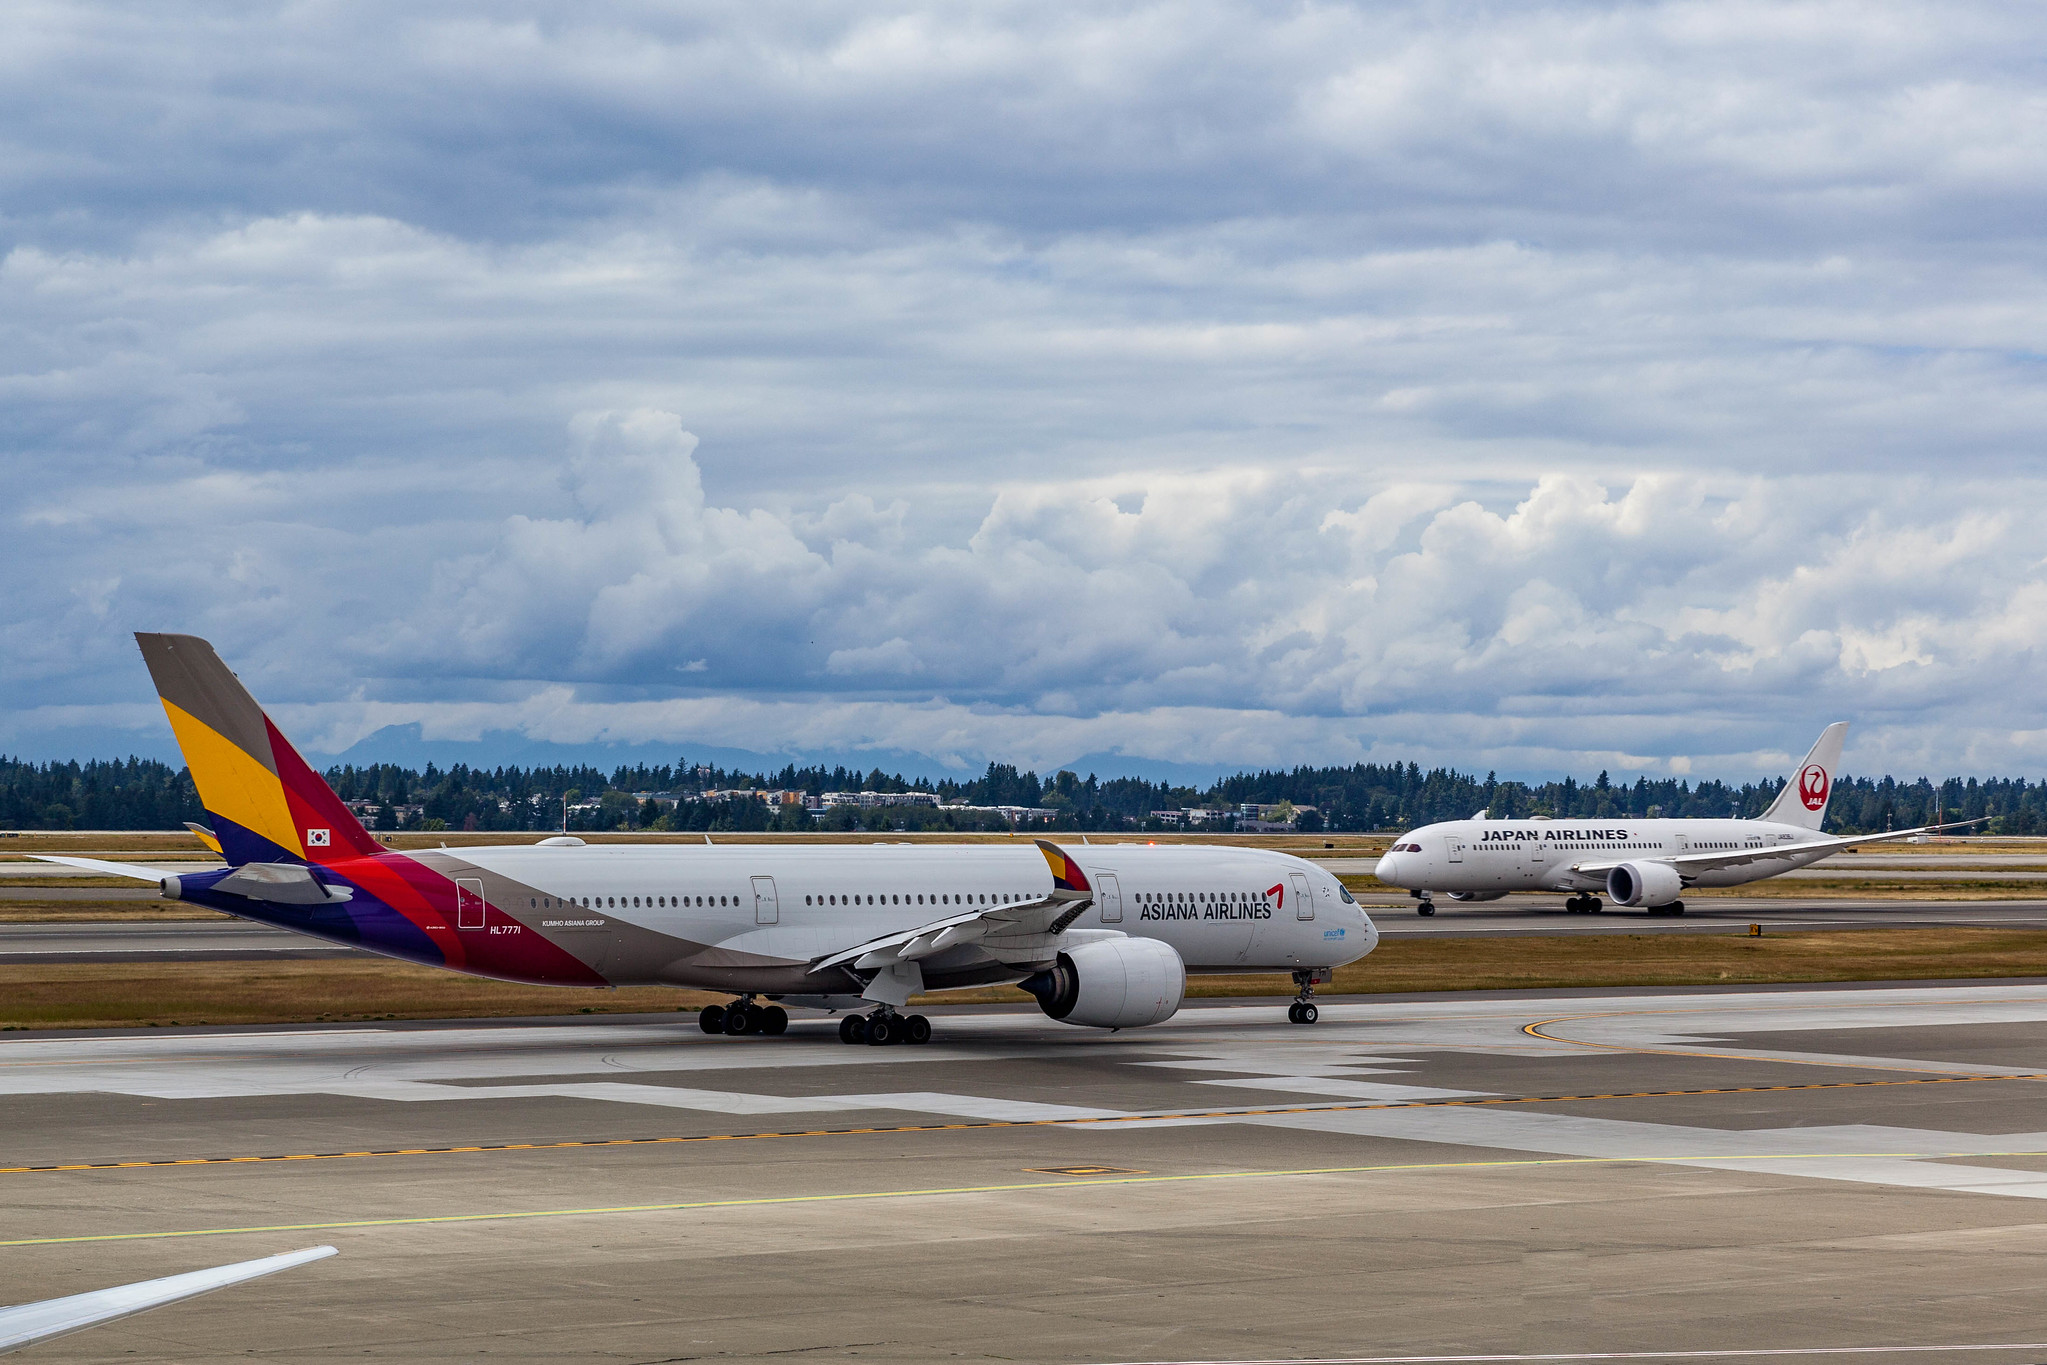 Asiana Airlines A350 and Japan Airlines Boeing 787